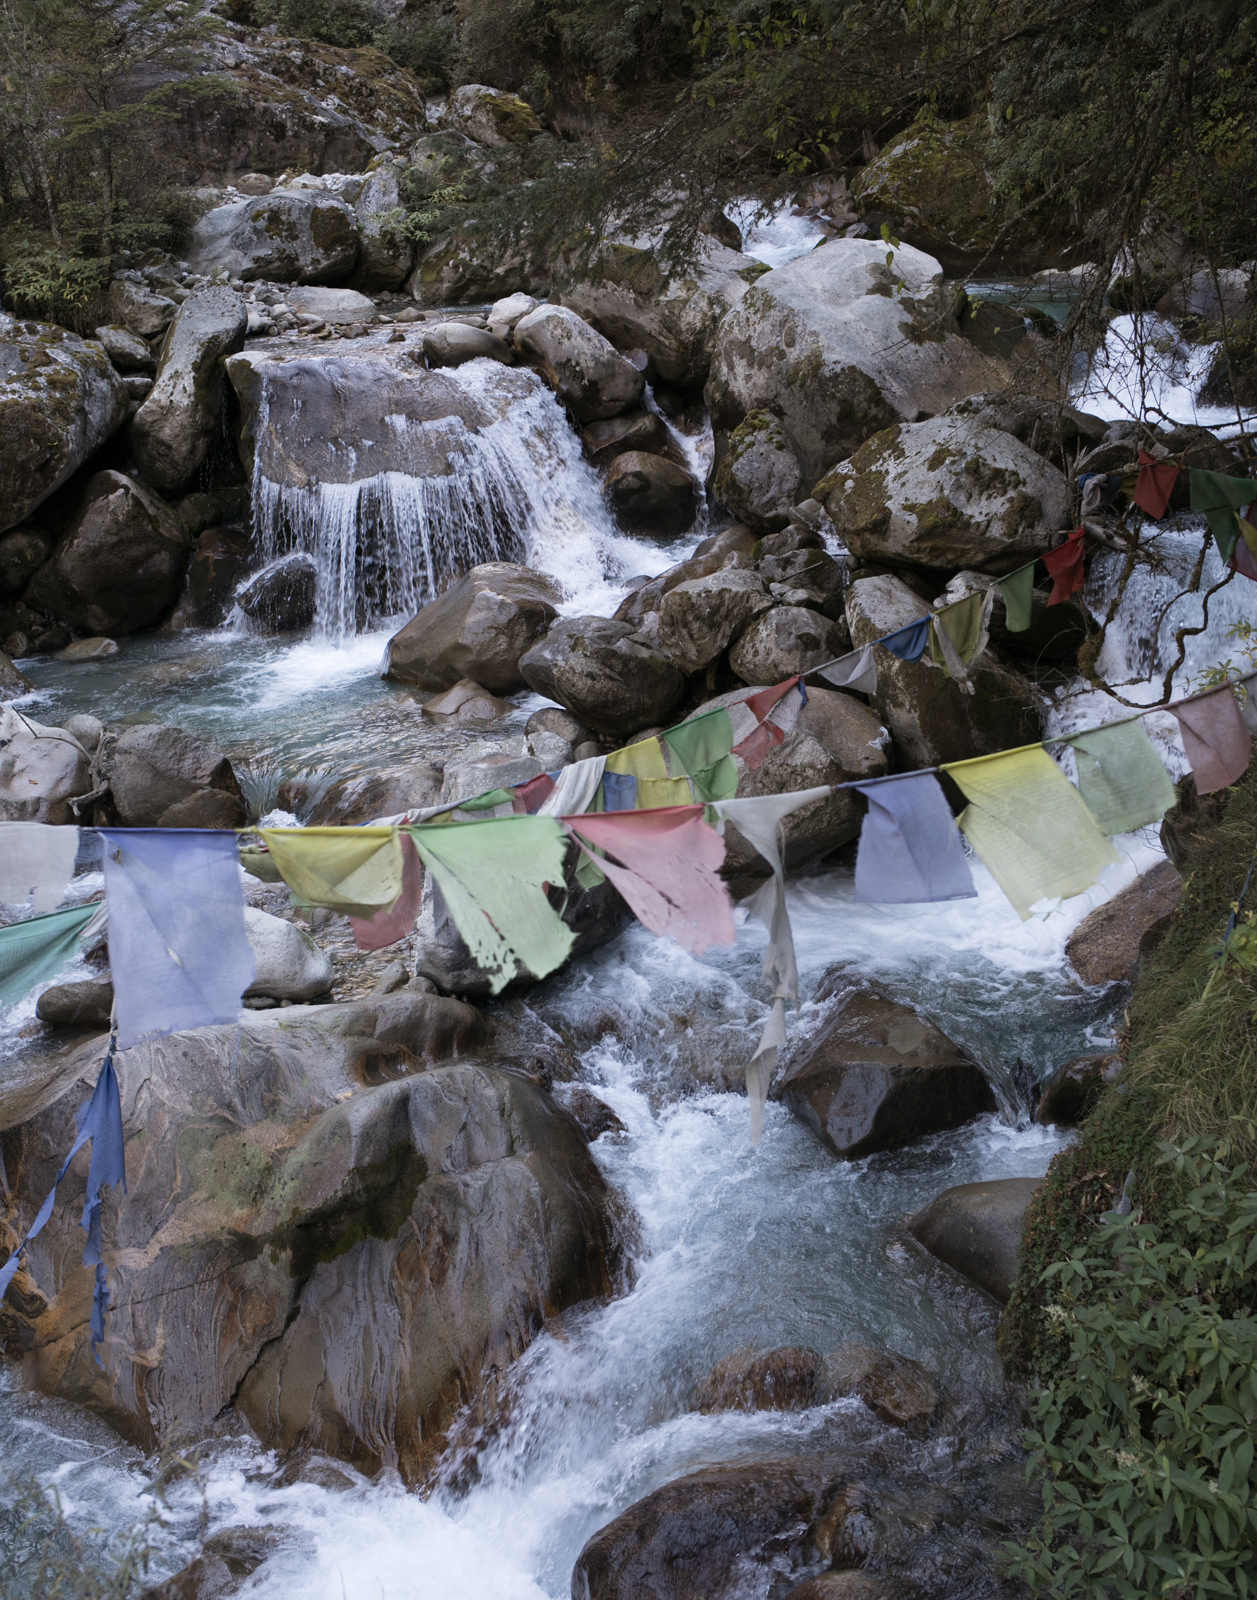 Prayer flags near the Koshi Nadi river.